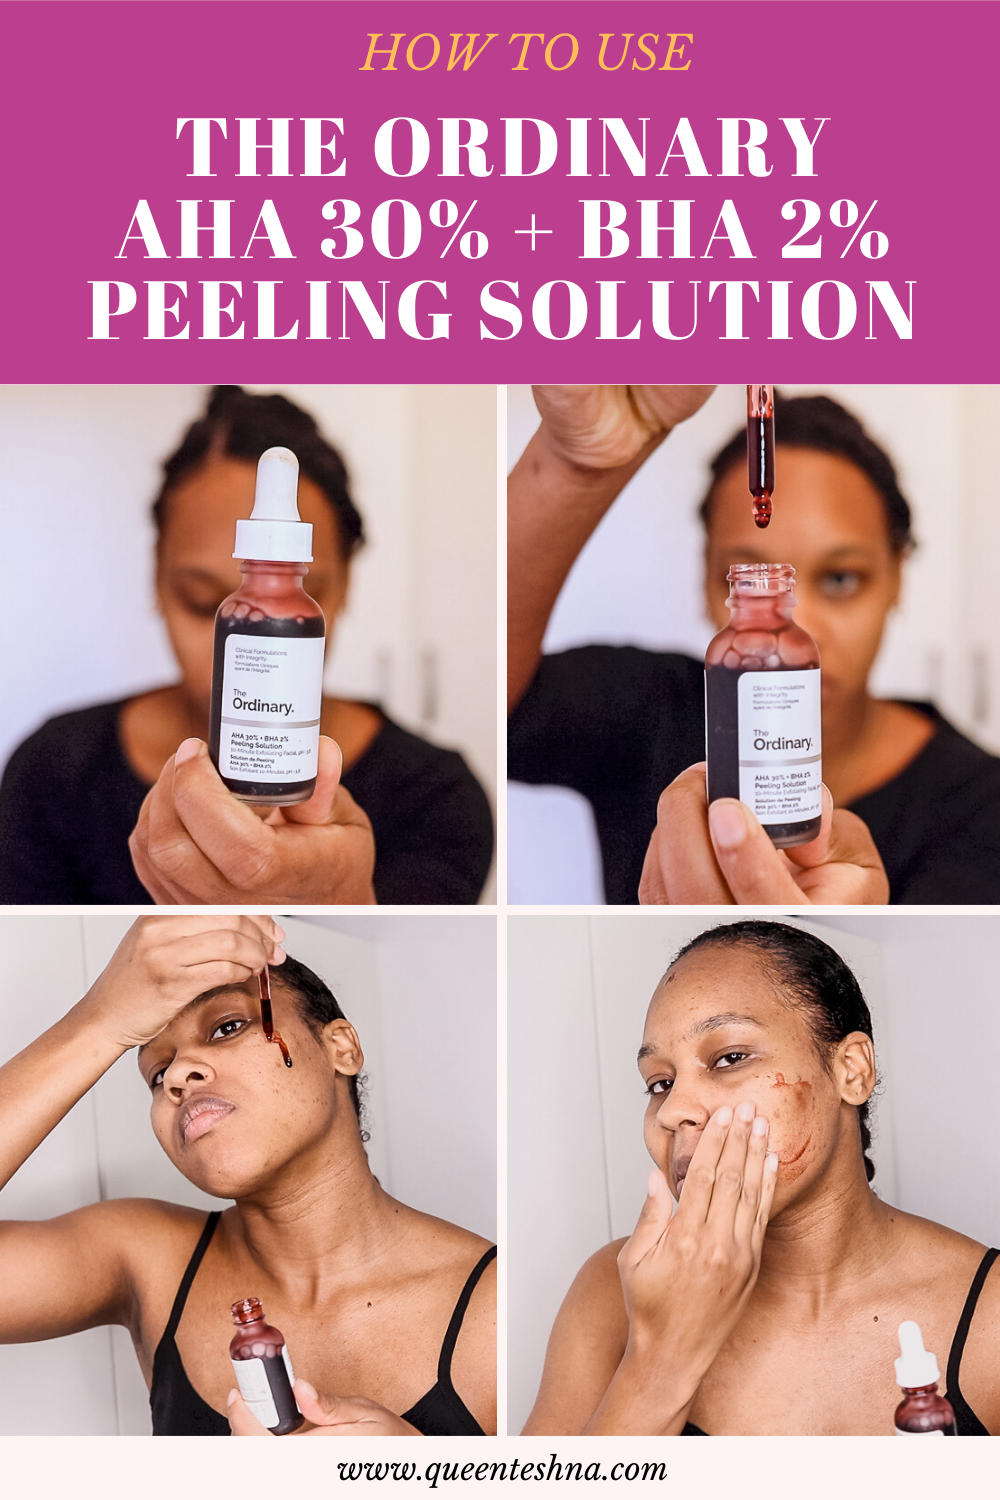 The Ordinary Peeling Solution 2 Weeks Results